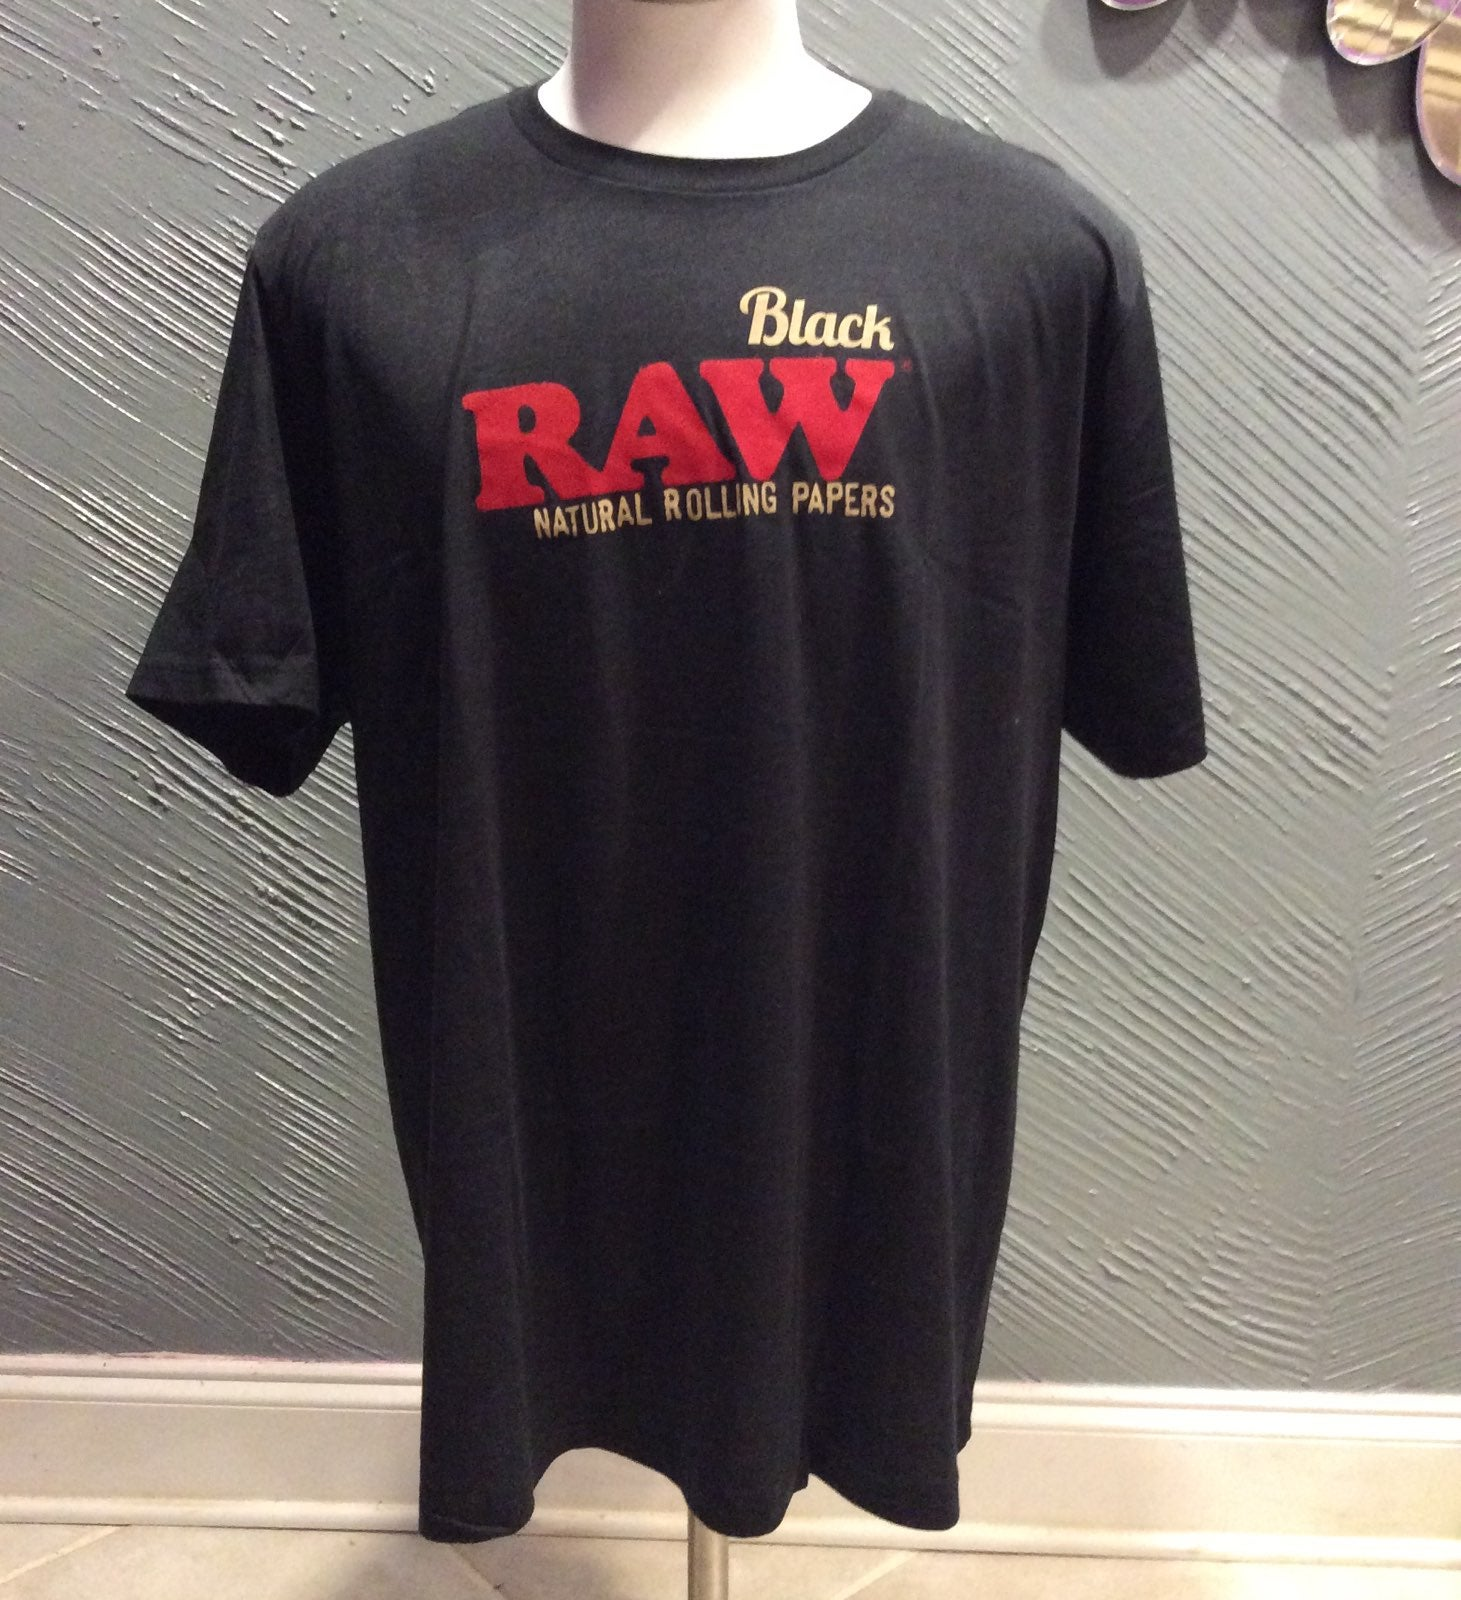 XXL RAW Black Taste Your Terps Tshirt